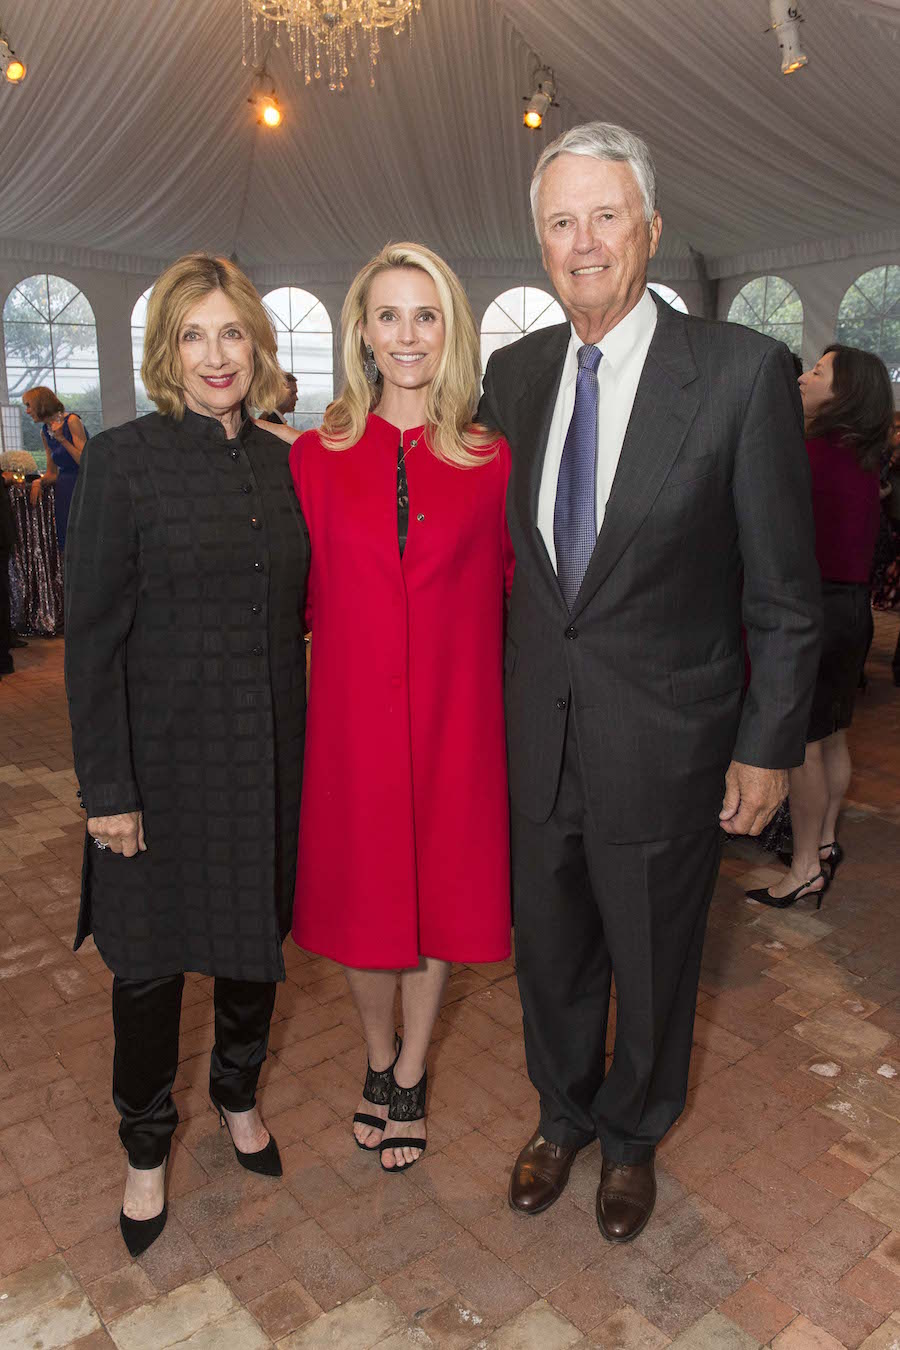 Judy Siebel, Jennifer Siebel Newsom and Ken Siebel